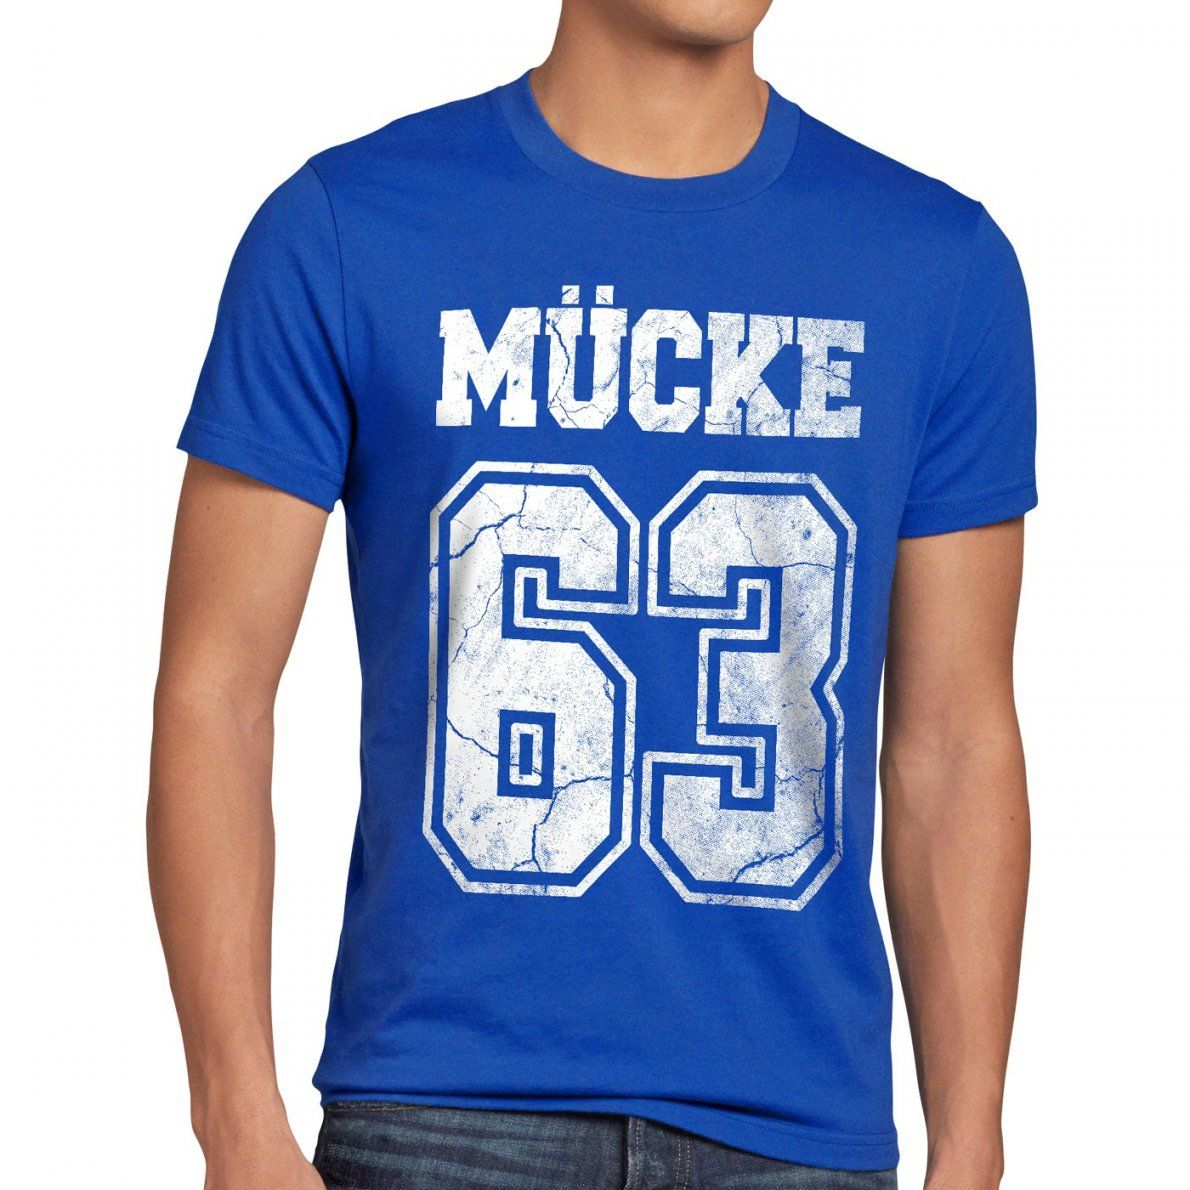 Mücke 63 Herren Tshirt Terence Supertypen In Miami Hill Spencer Joe von Bud Spencer Mücke 63 Bild